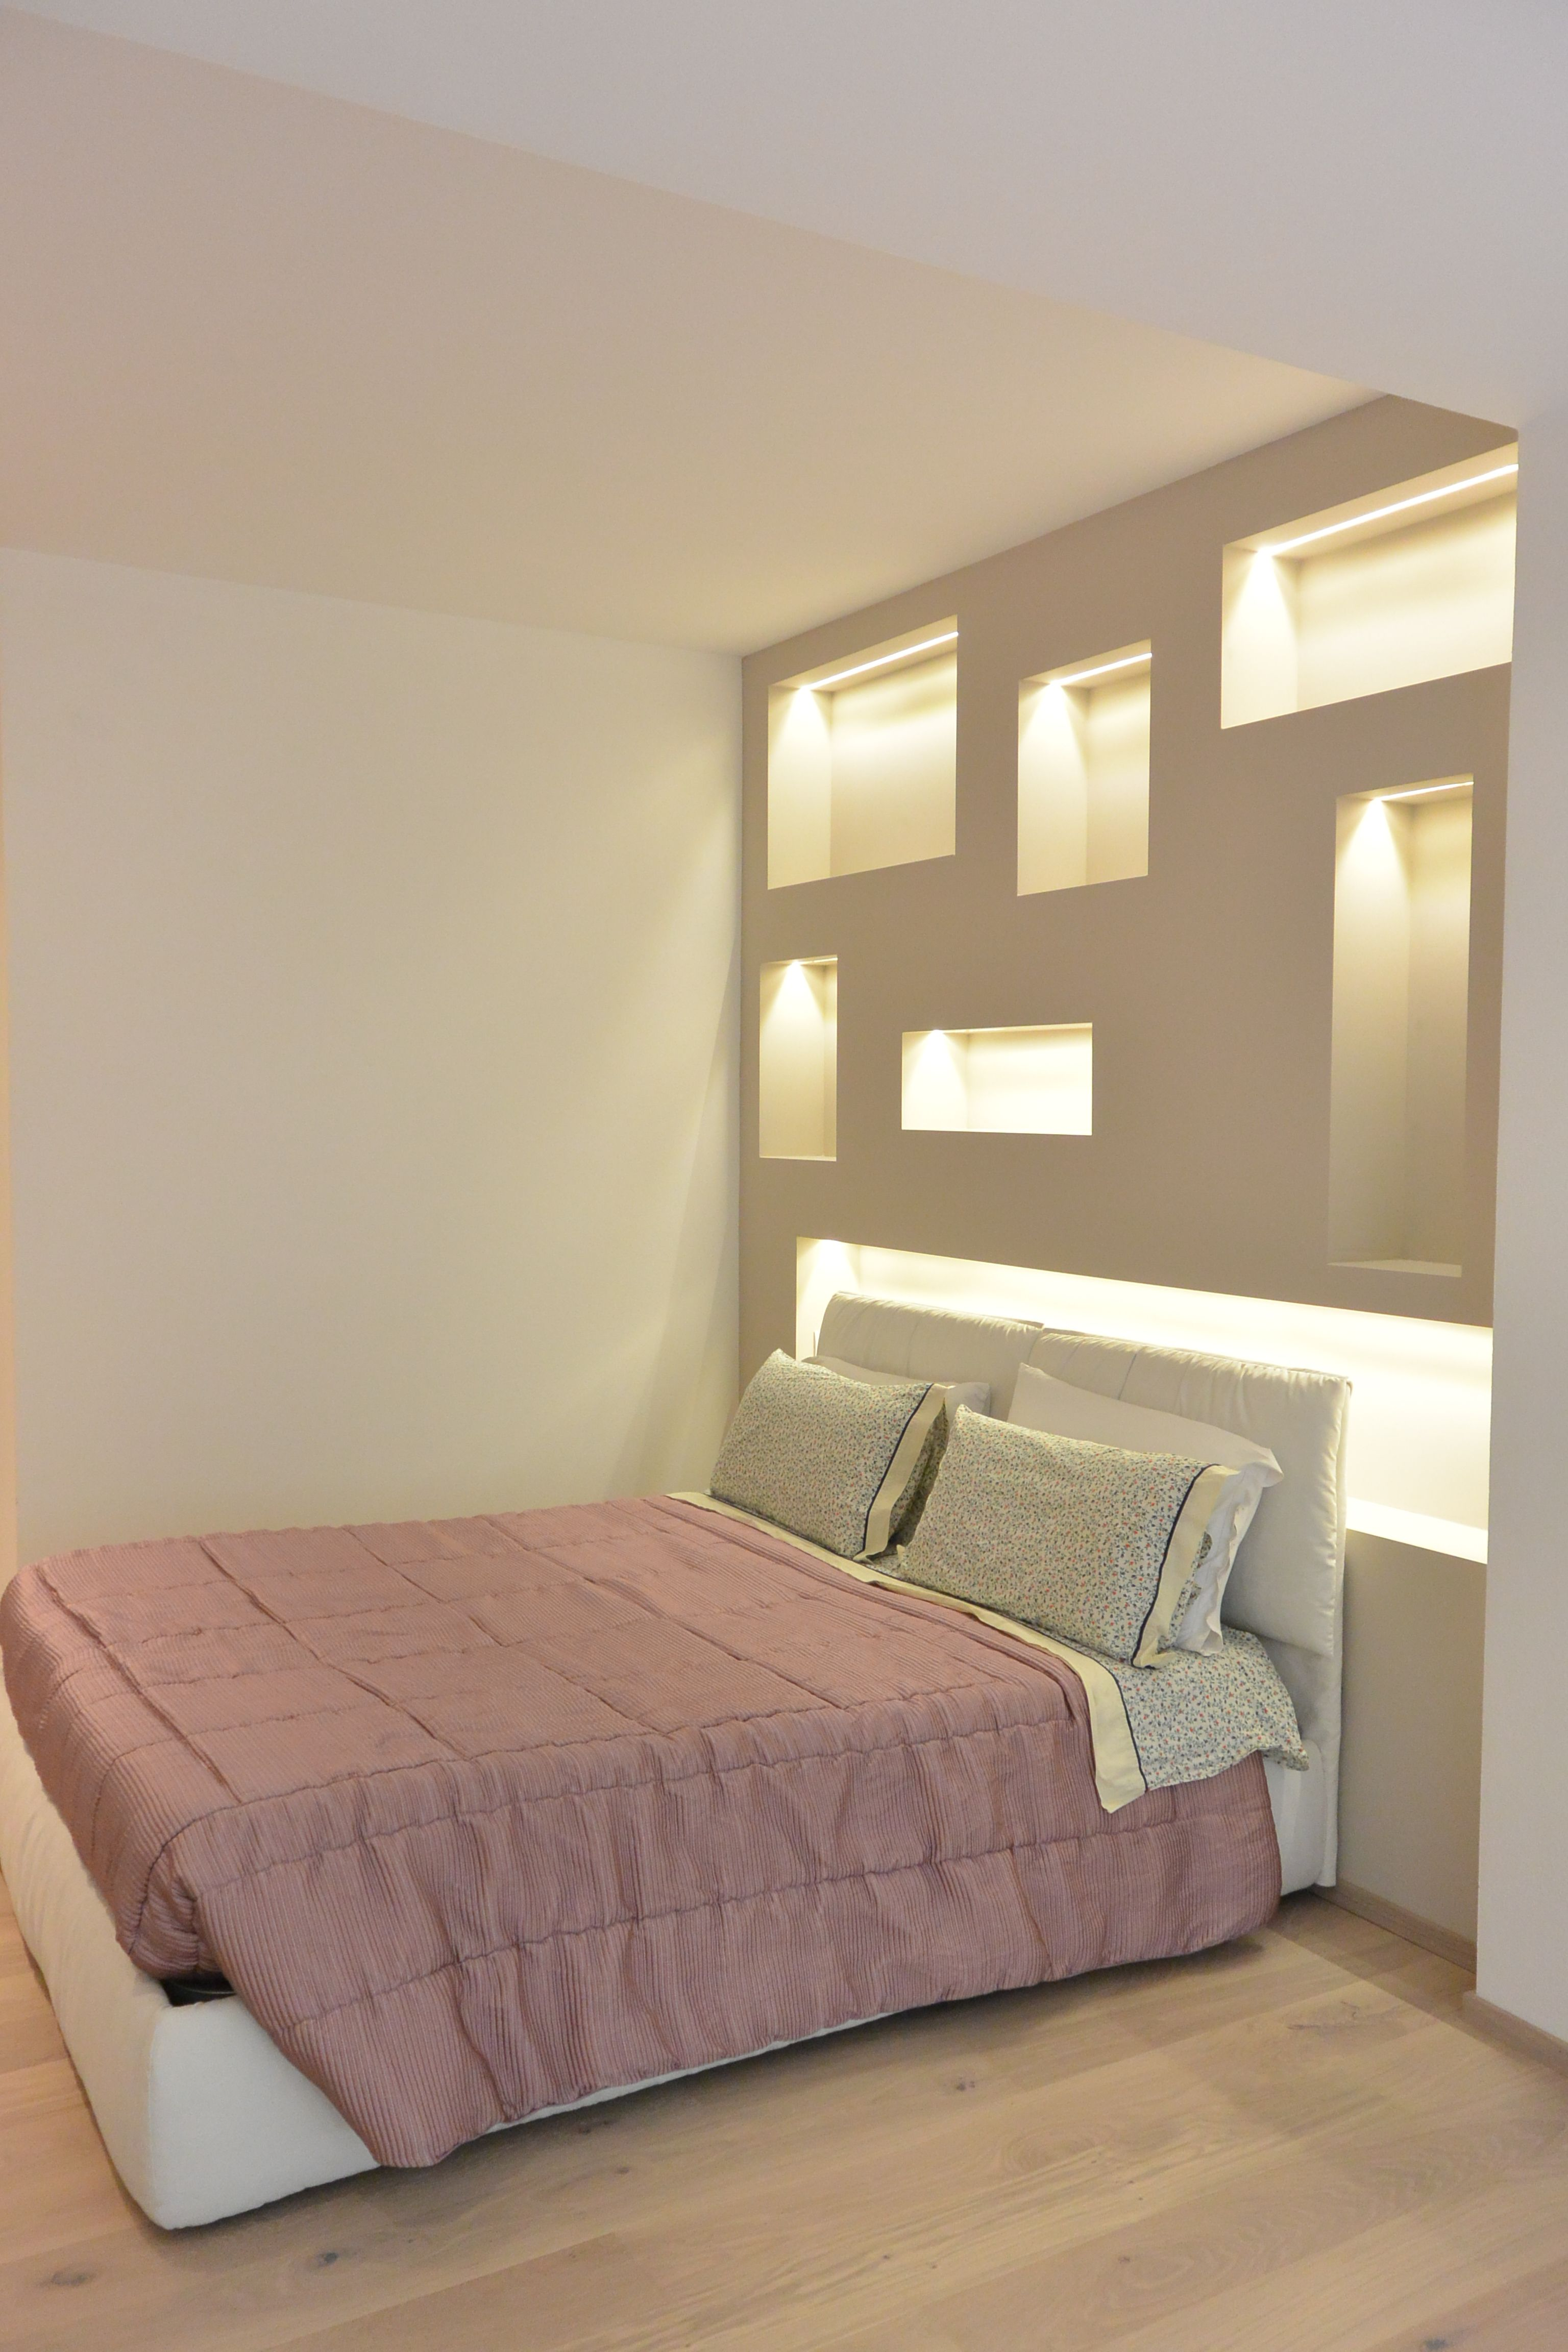 la camera da letto- nicchie in cartongesso con luci led  Interni  Bedroom decor, Awesome ...